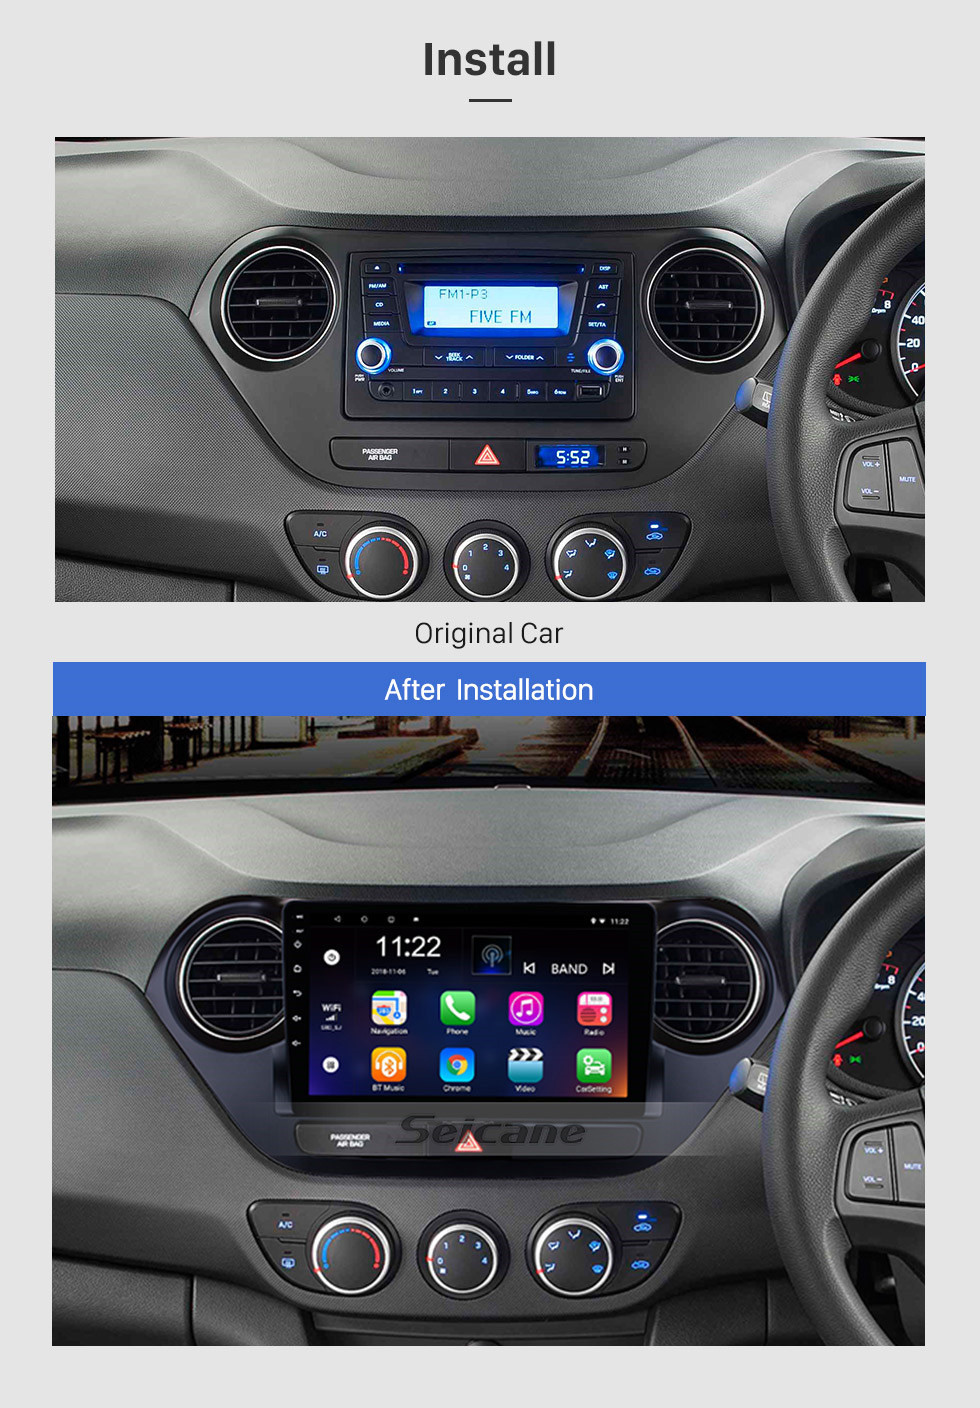 Seicane HD Touch Screen 9 inch Android 10.0 2013-2016 HYUNDAI I10 Grand i10 RHD GPS Navigation Radio with Bluetooth WiFi support Mirror Link Steering Wheel Control